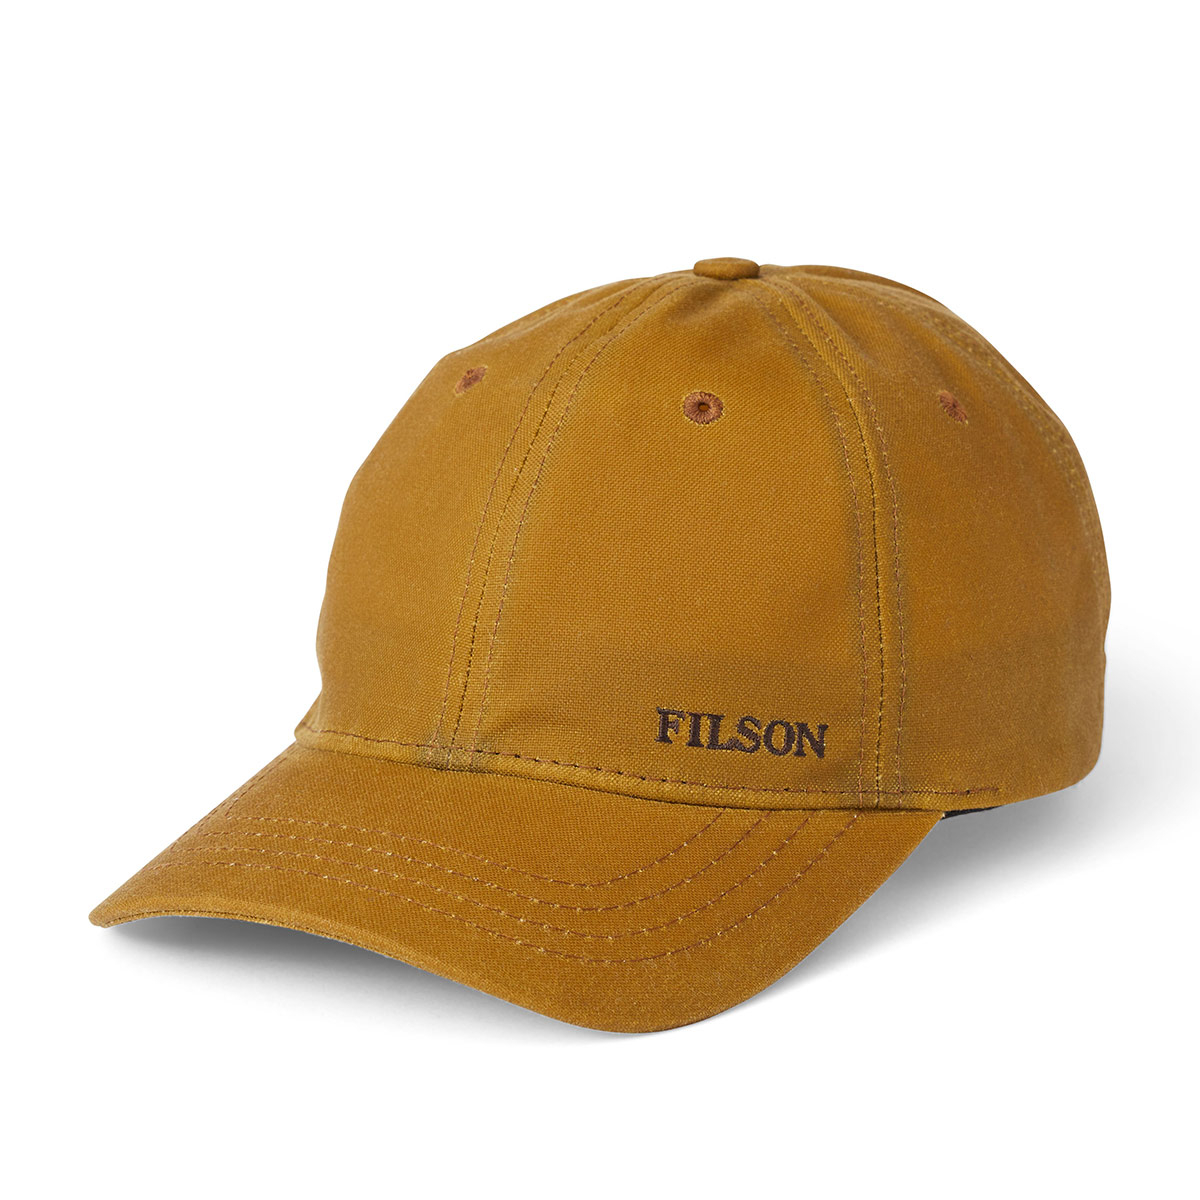 Filson Oil Tin Low-Profile Cap 20172158 Tan, to provide years of service